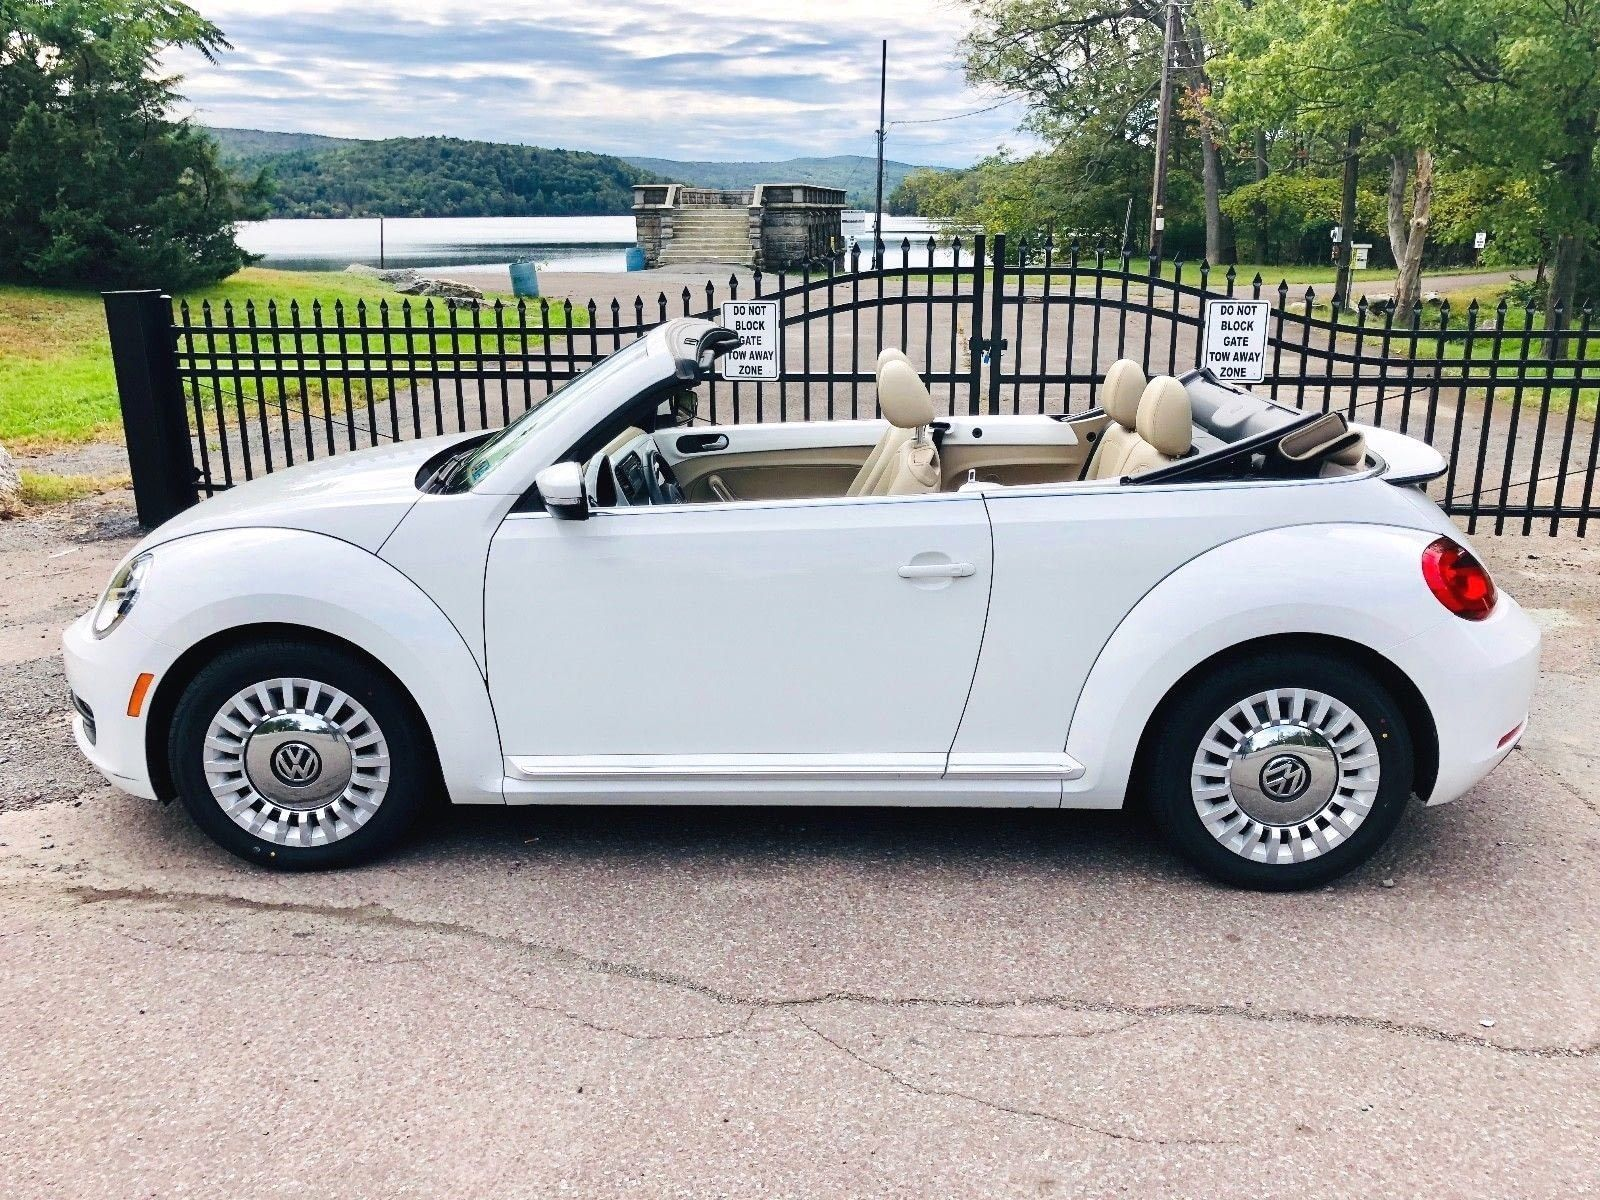 2013 Volkswagen Beetle Convertible Candy White W Beige Leatherette 2 5l 5 Cylinder This Vol In 2020 Volkswagen Beetle Convertible Beetle Convertible Volkswagen Beetle